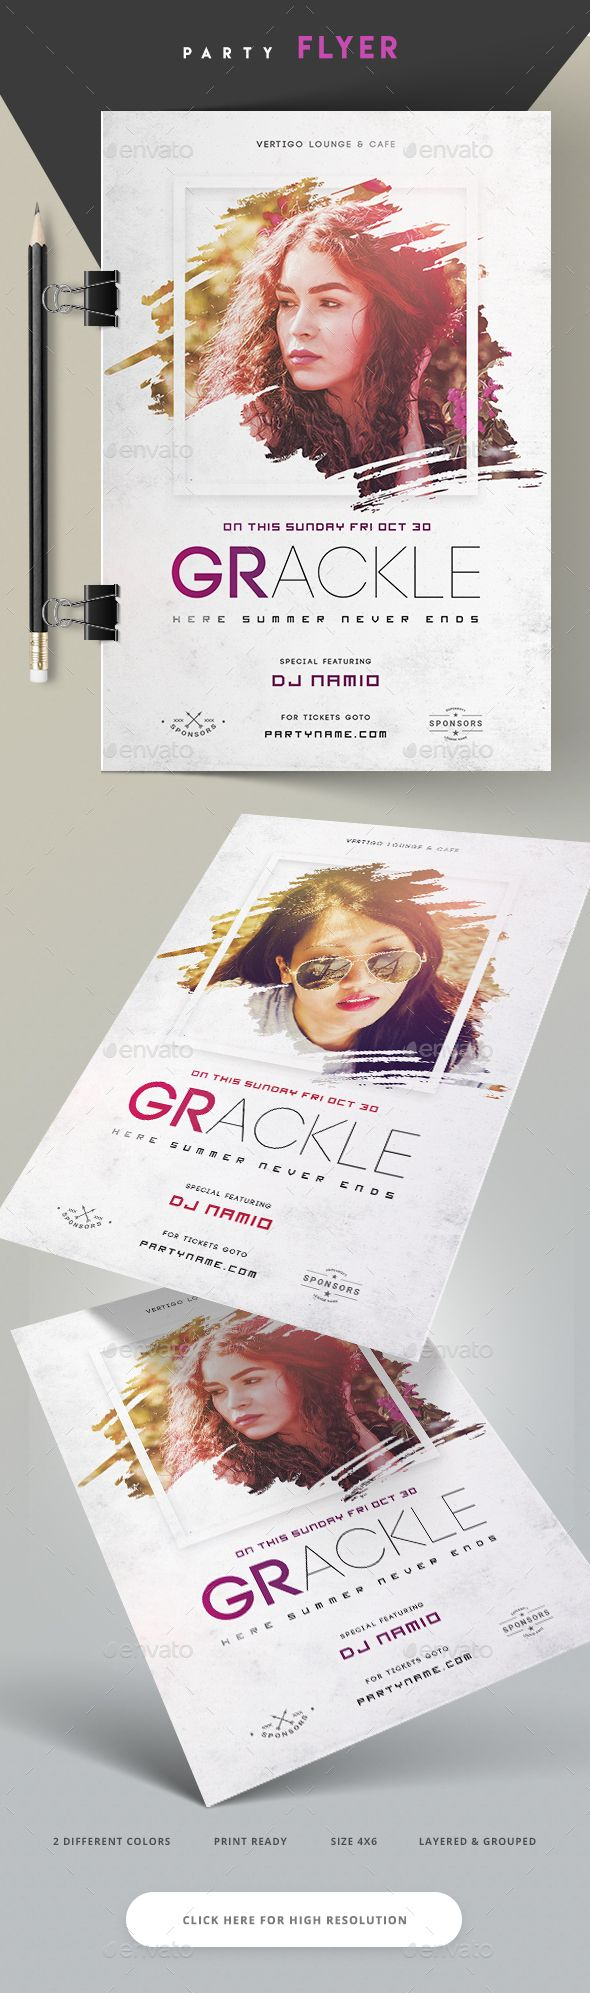 Lounge Party Flyer  — PSD Template #saturday #hip hop • Download ➝ https://graphicriver.net/item/lounge-party-flyer/18153353?ref=pxcr